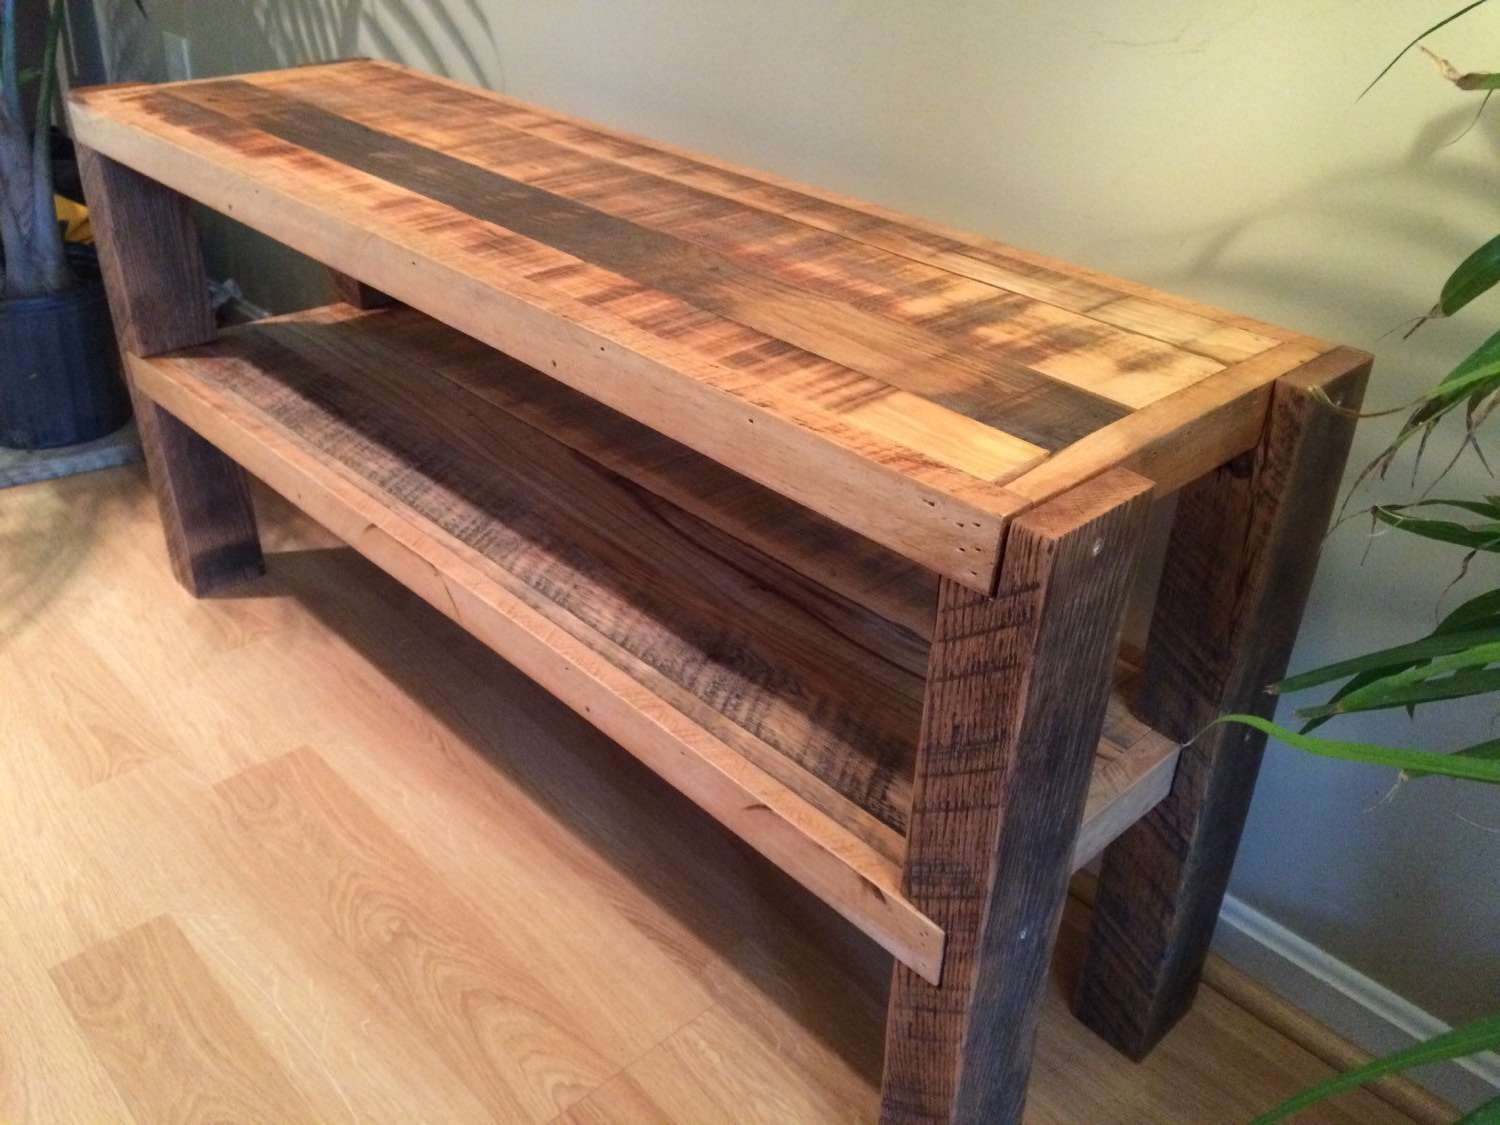 Reclaimed Wood Notched Leg Media Console / Tv Stand W/ Pertaining To Recycled Wood Tv Stands (View 10 of 15)